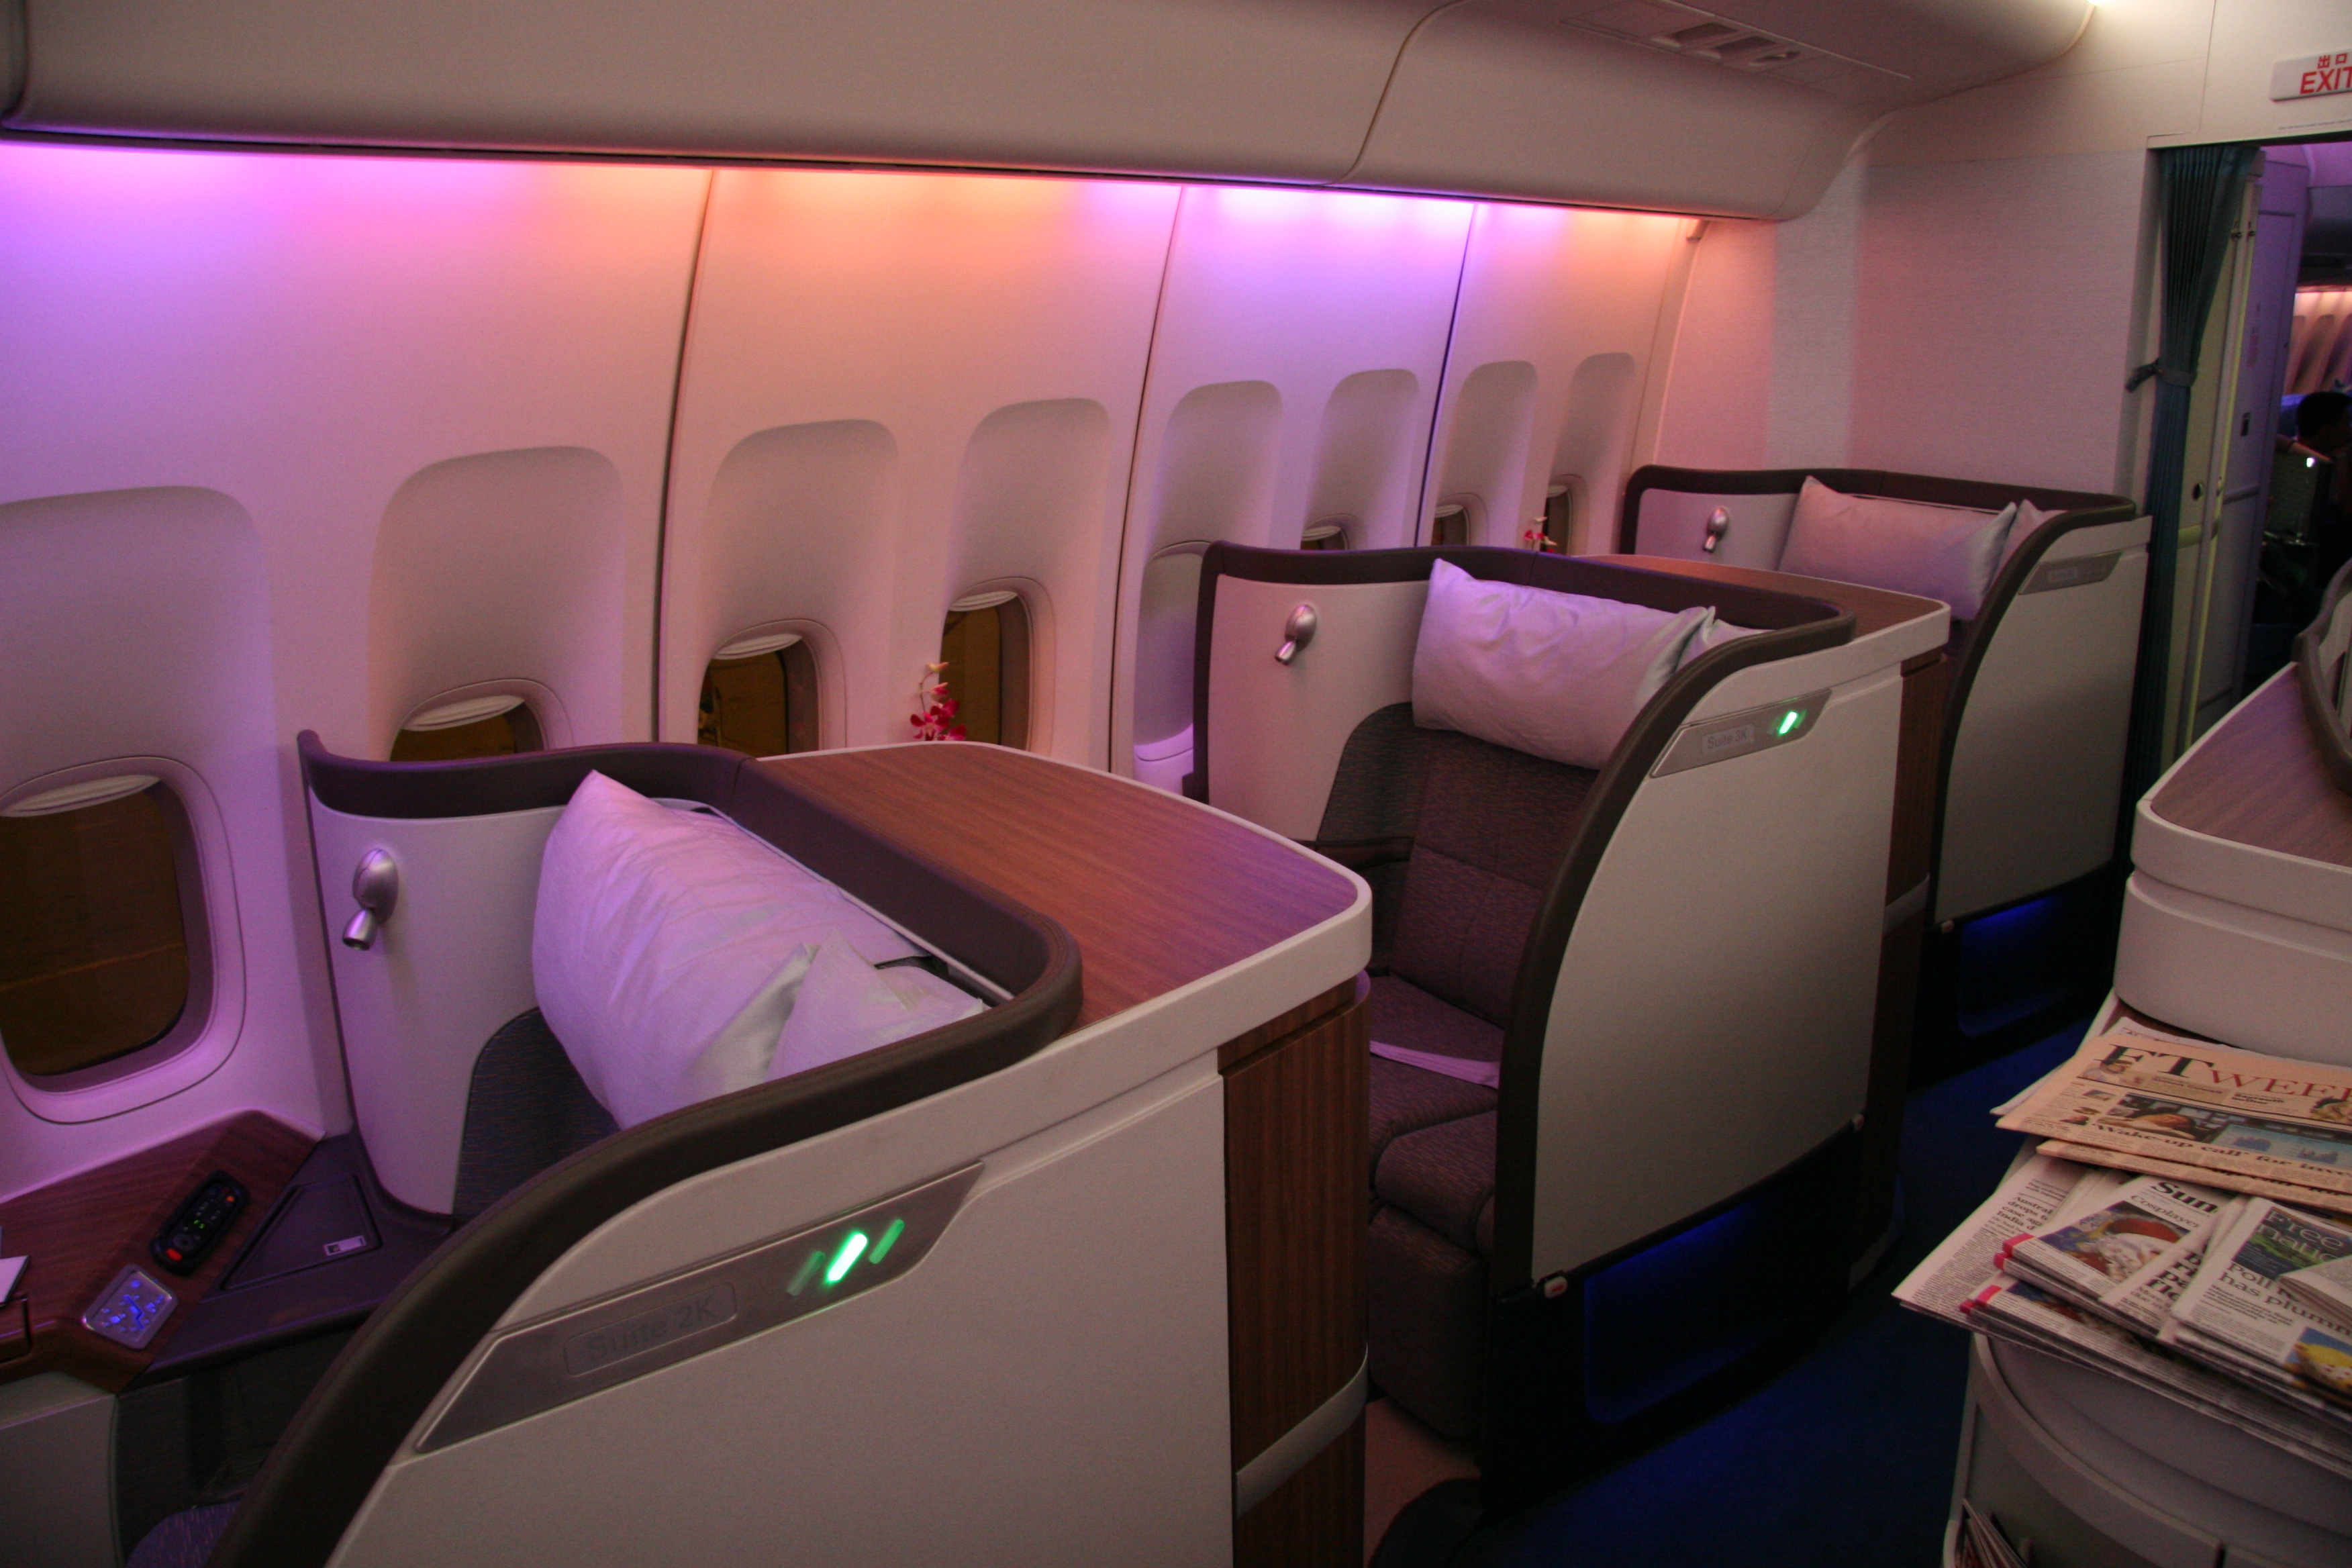 malaysia has first class facilities but Malaysia airlines a380 first class trip report flight from paris to kuala lumpur with photos, menu, in-flight meals, amenity kit come check out the mh a380.